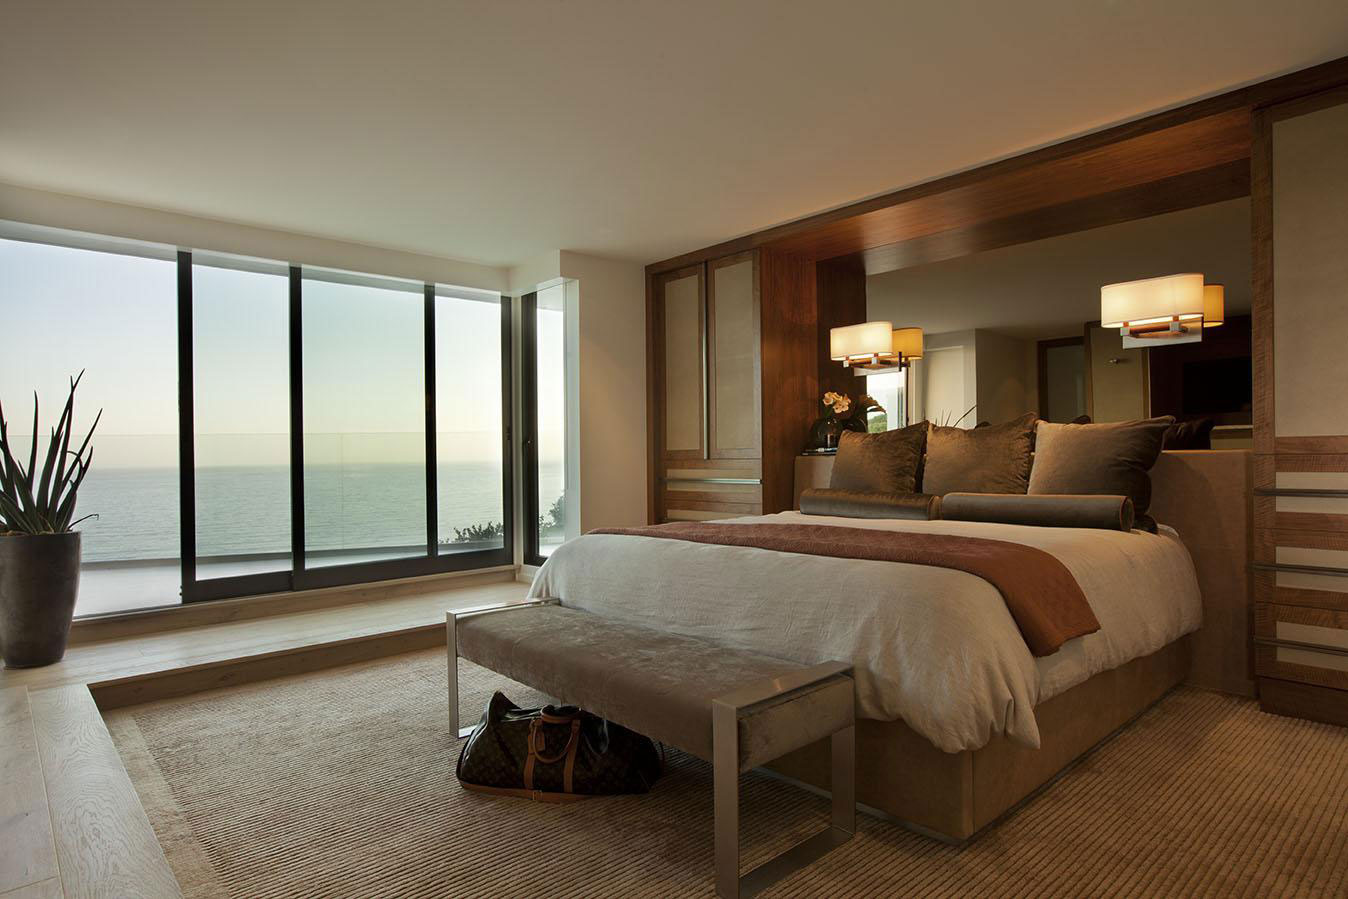 Bedroom, Patio Doors, Lighting, House in Pacific Palisades, Los Angeles